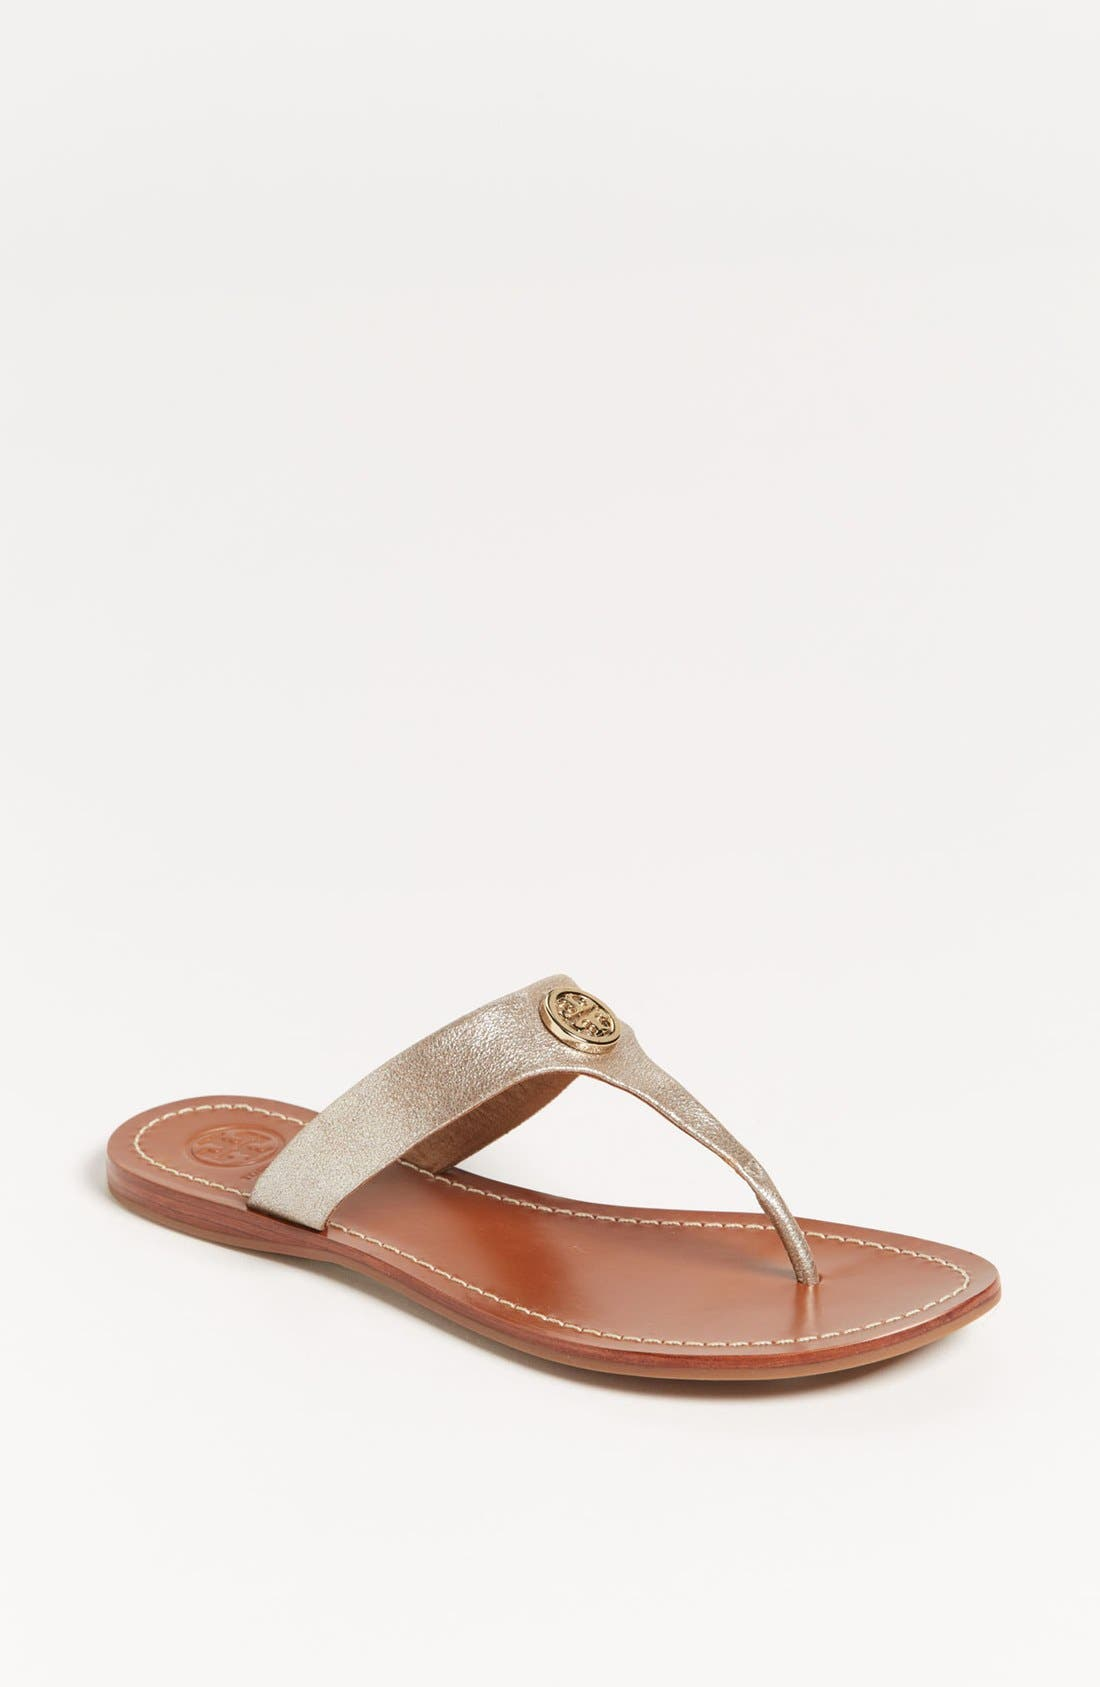 Alternate Image 1 Selected - Tory Burch 'Cameron' Sandal (Exclusive Color)